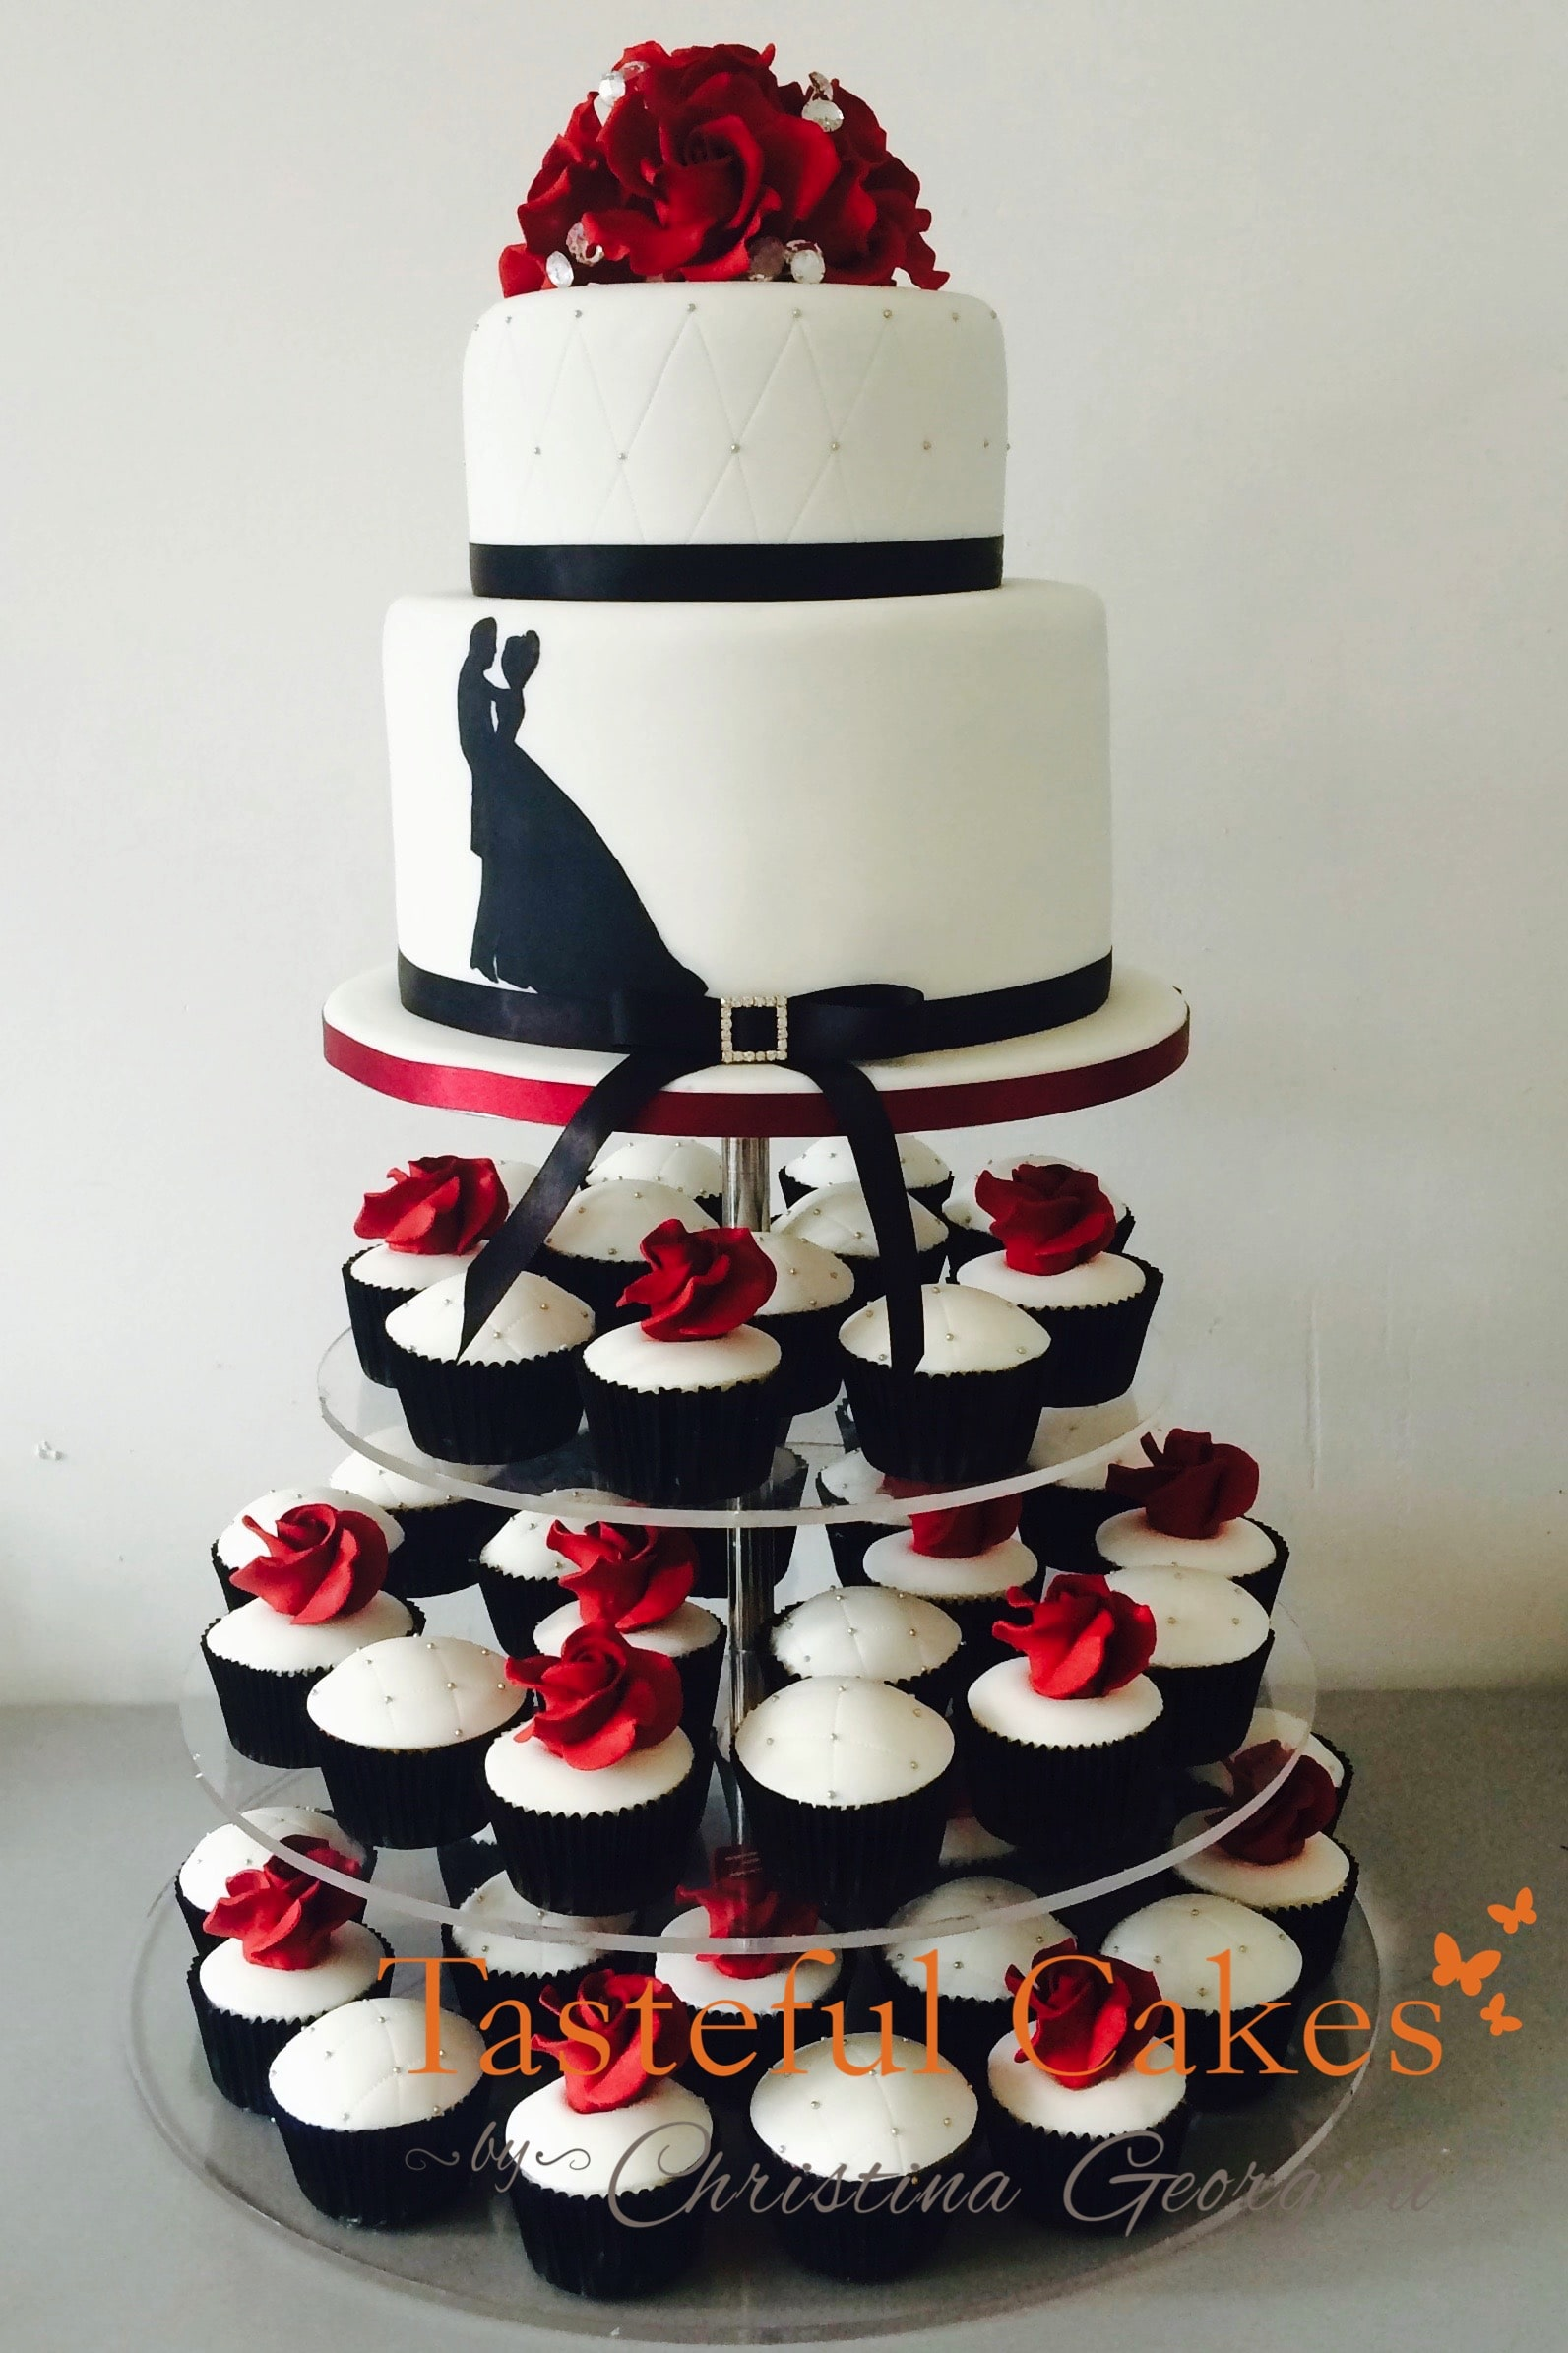 tasteful cakes by christina georgiou black red silhouette wedding cupcake tower. Black Bedroom Furniture Sets. Home Design Ideas